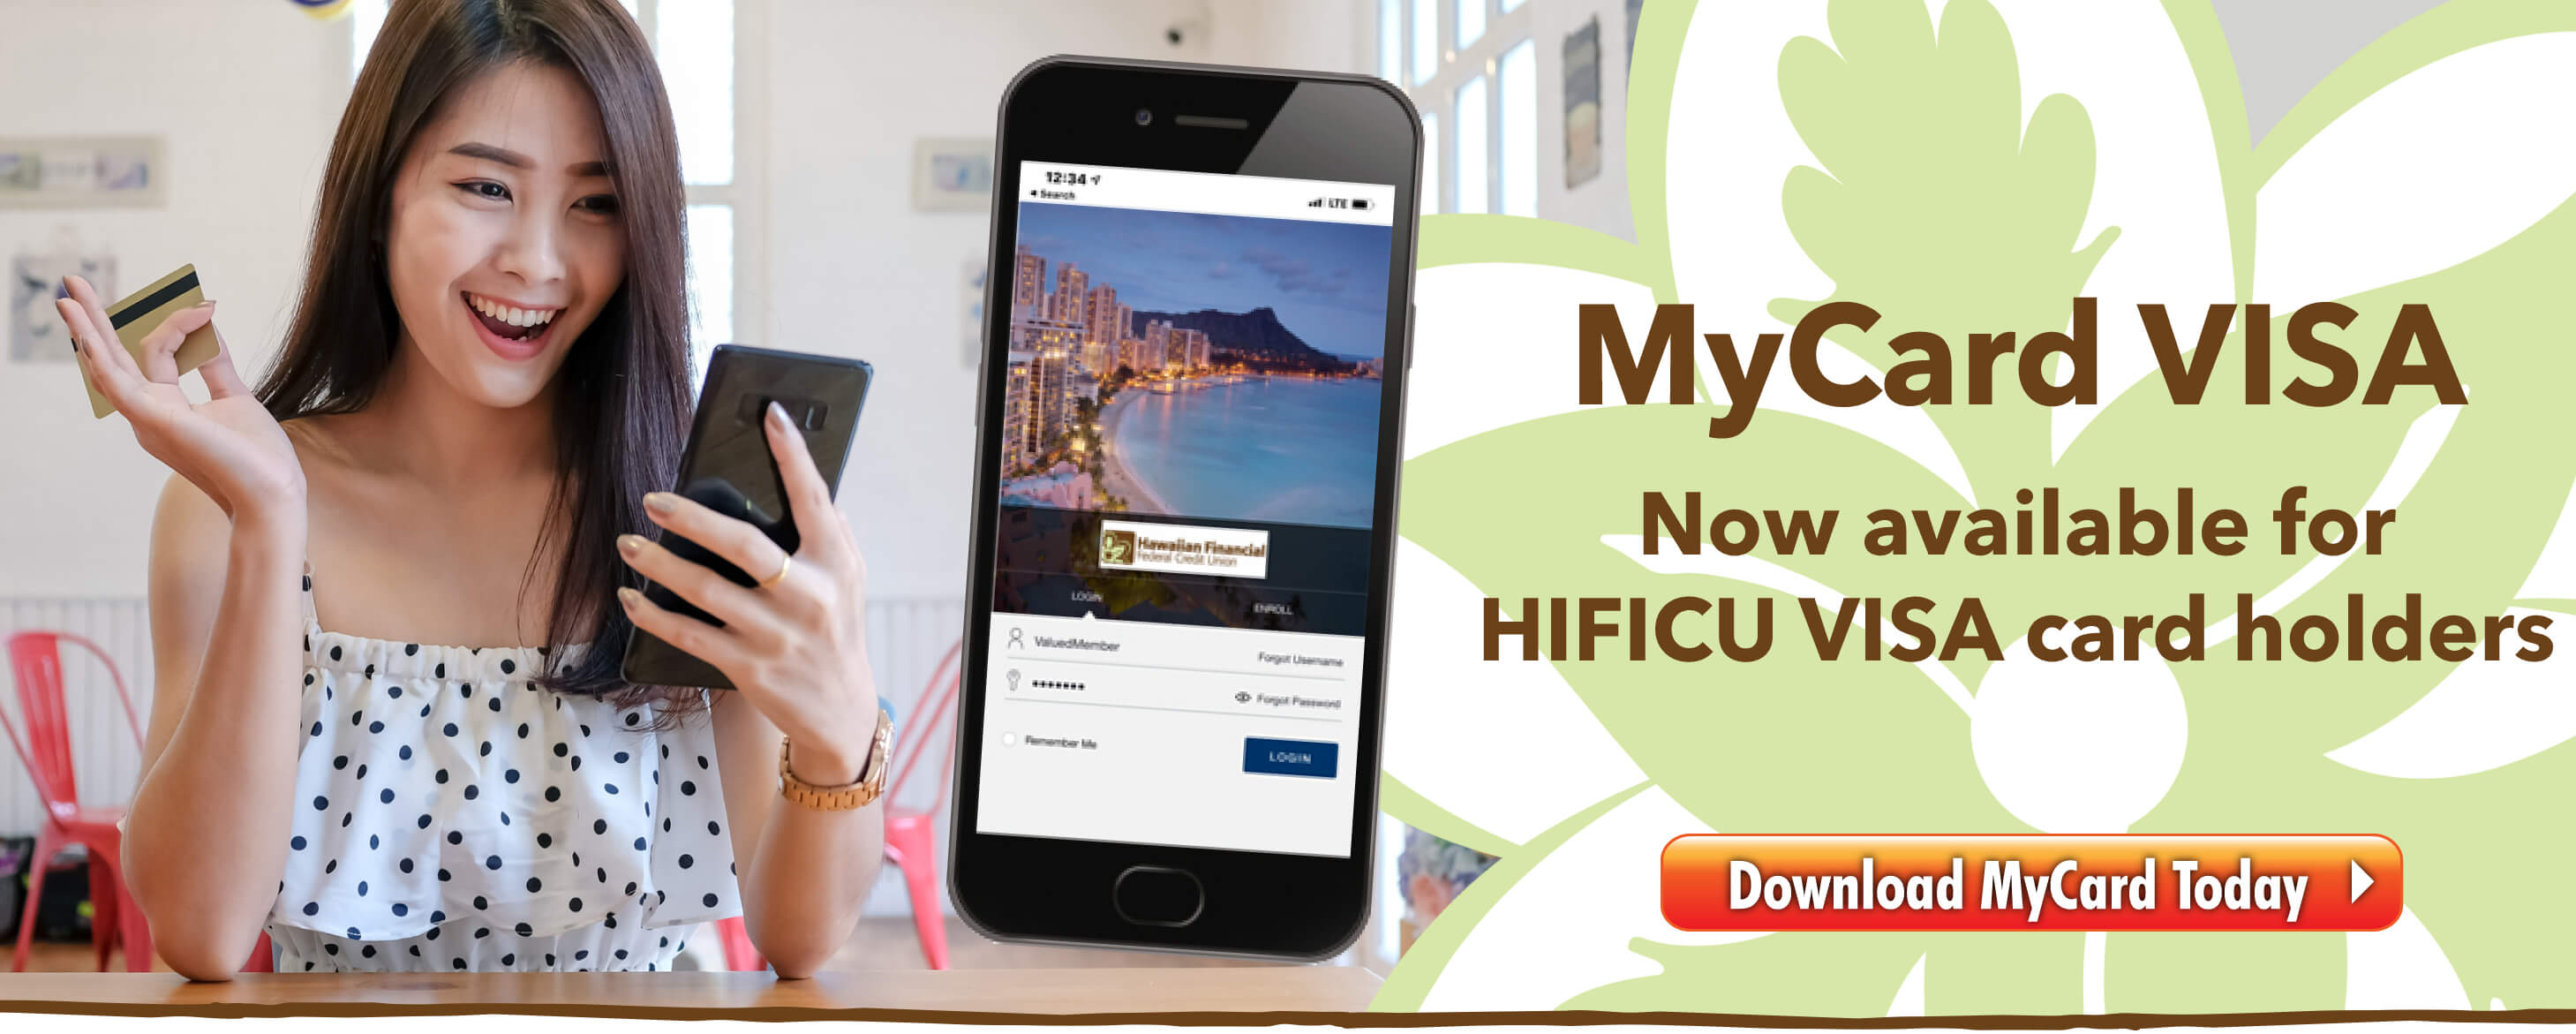 MyCard VISA app is now available for HIFICU VISA Card Holders.